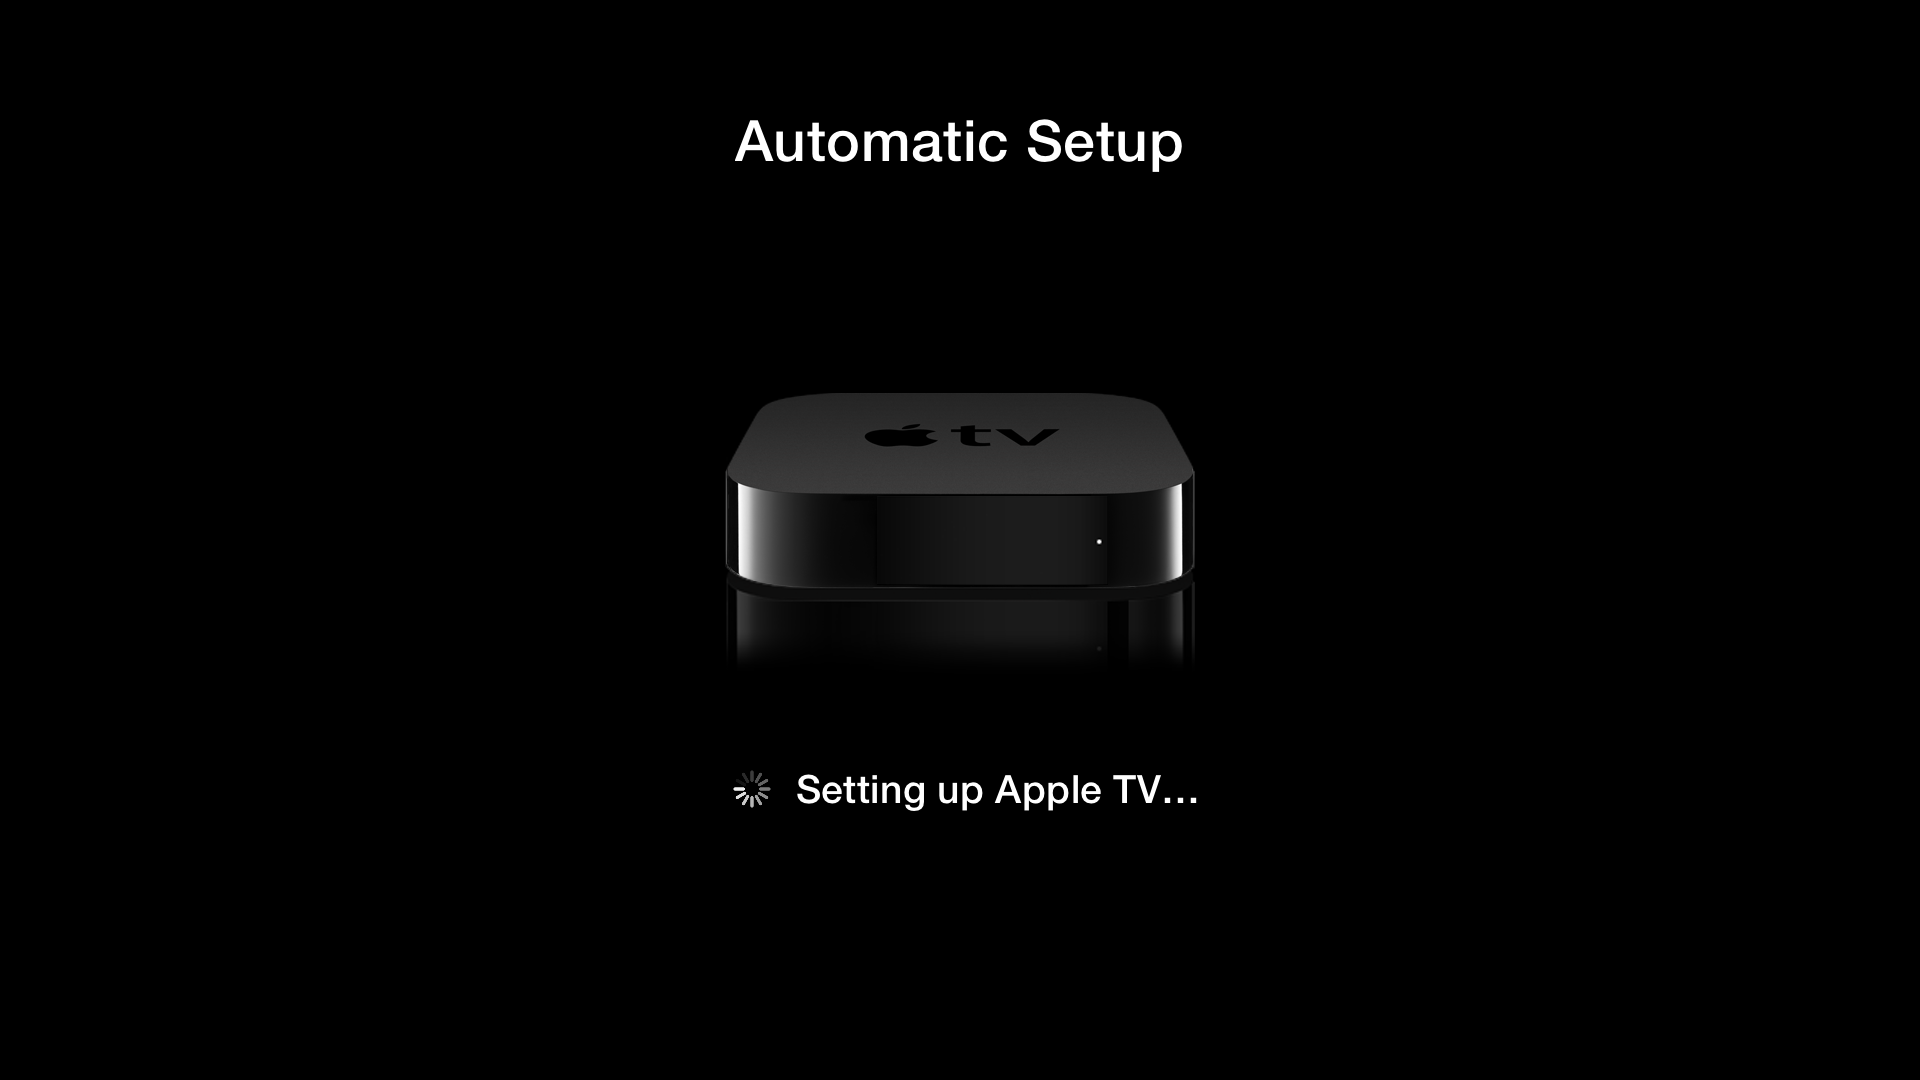 Apple TV (tap to setup 006)